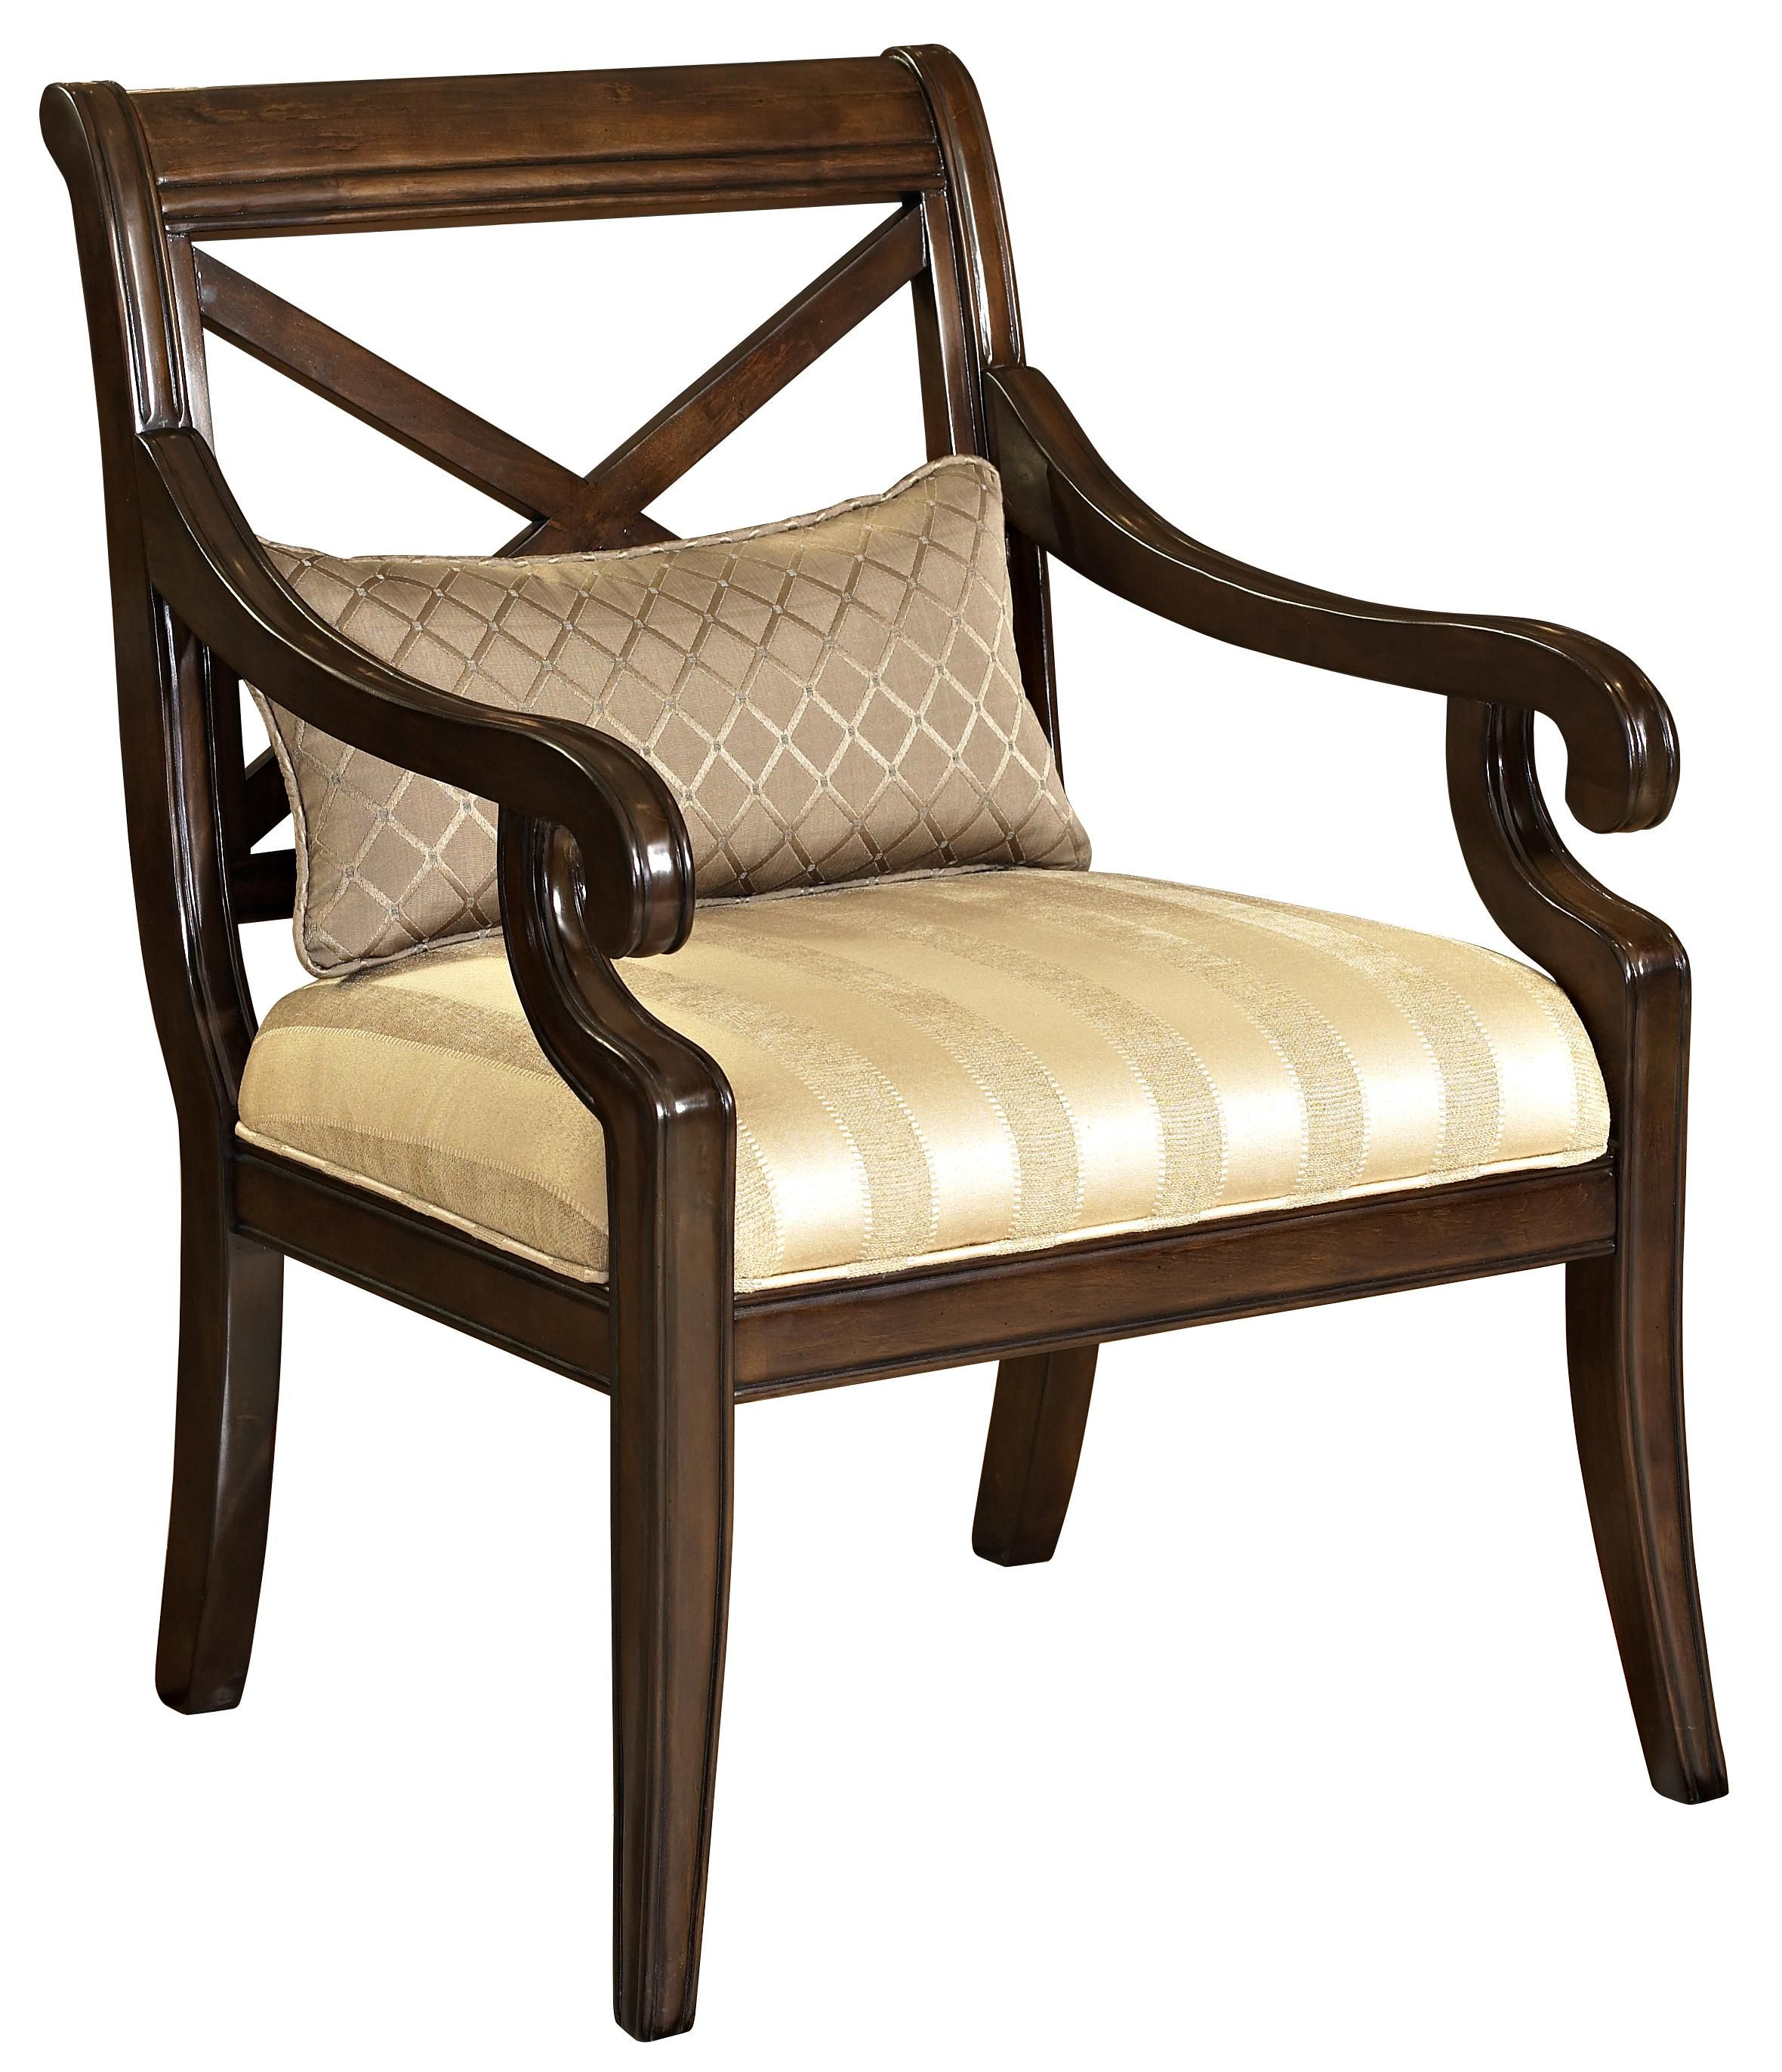 Classic Seating Exposed Wood Chair By Powell